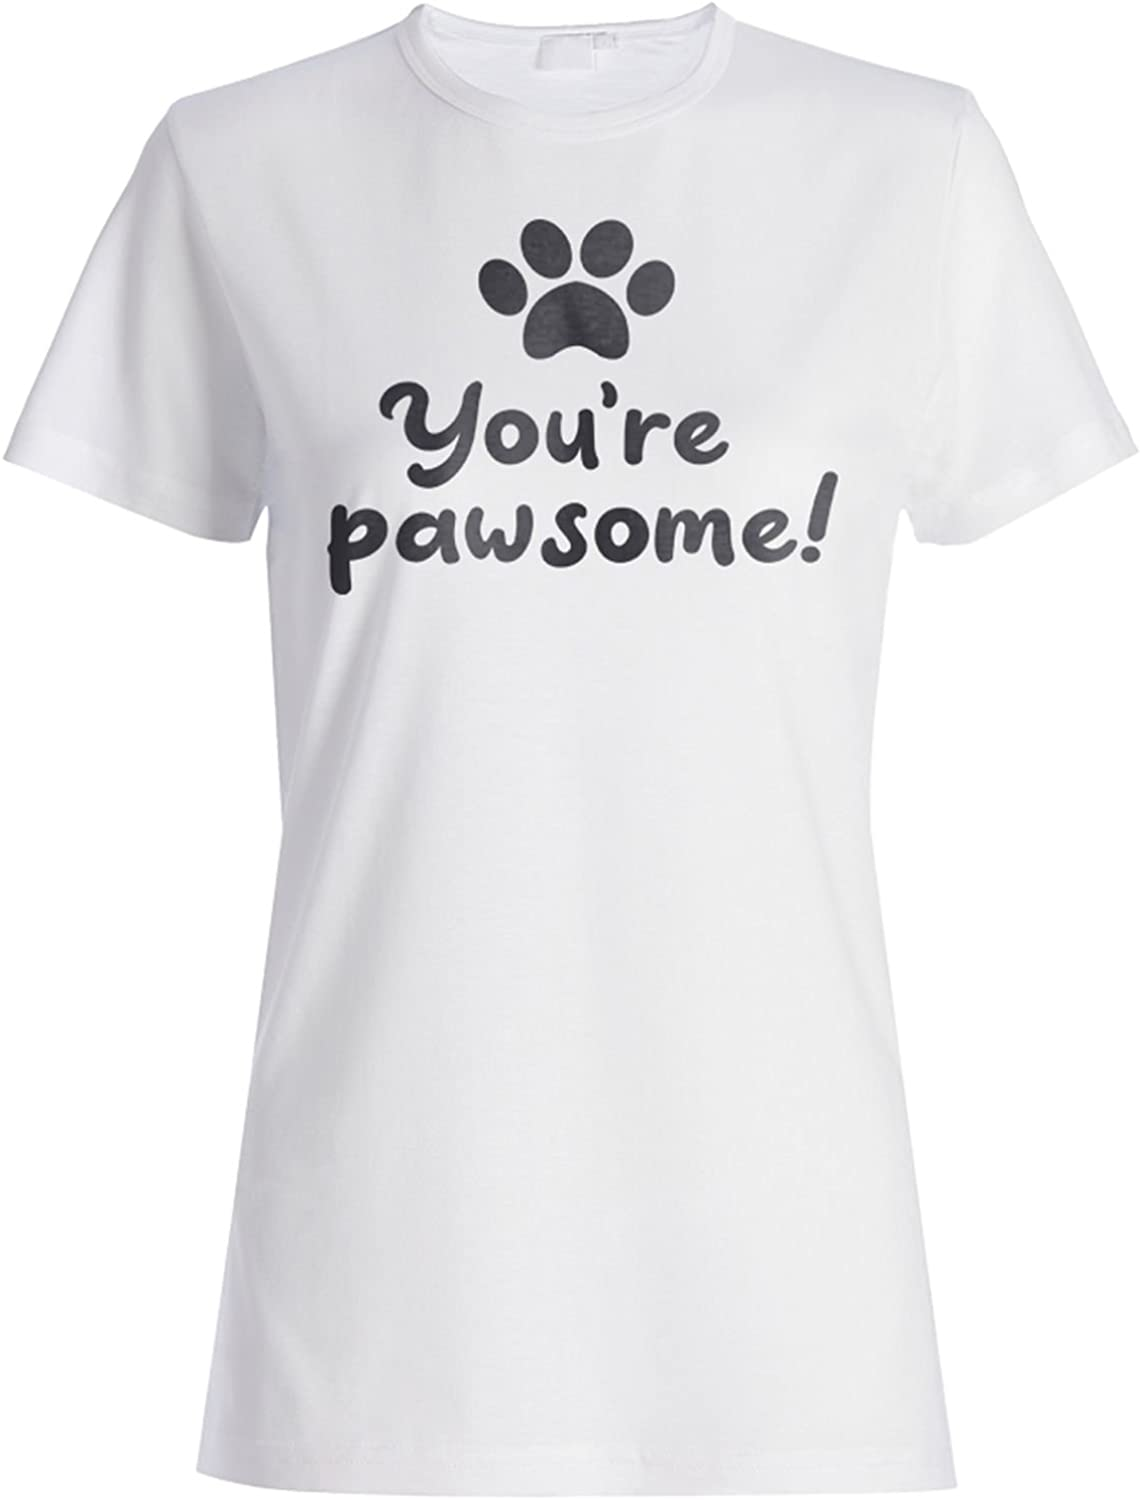 INNOGLEN Youre Pawsome Ladies T-Shirt Tee t440f